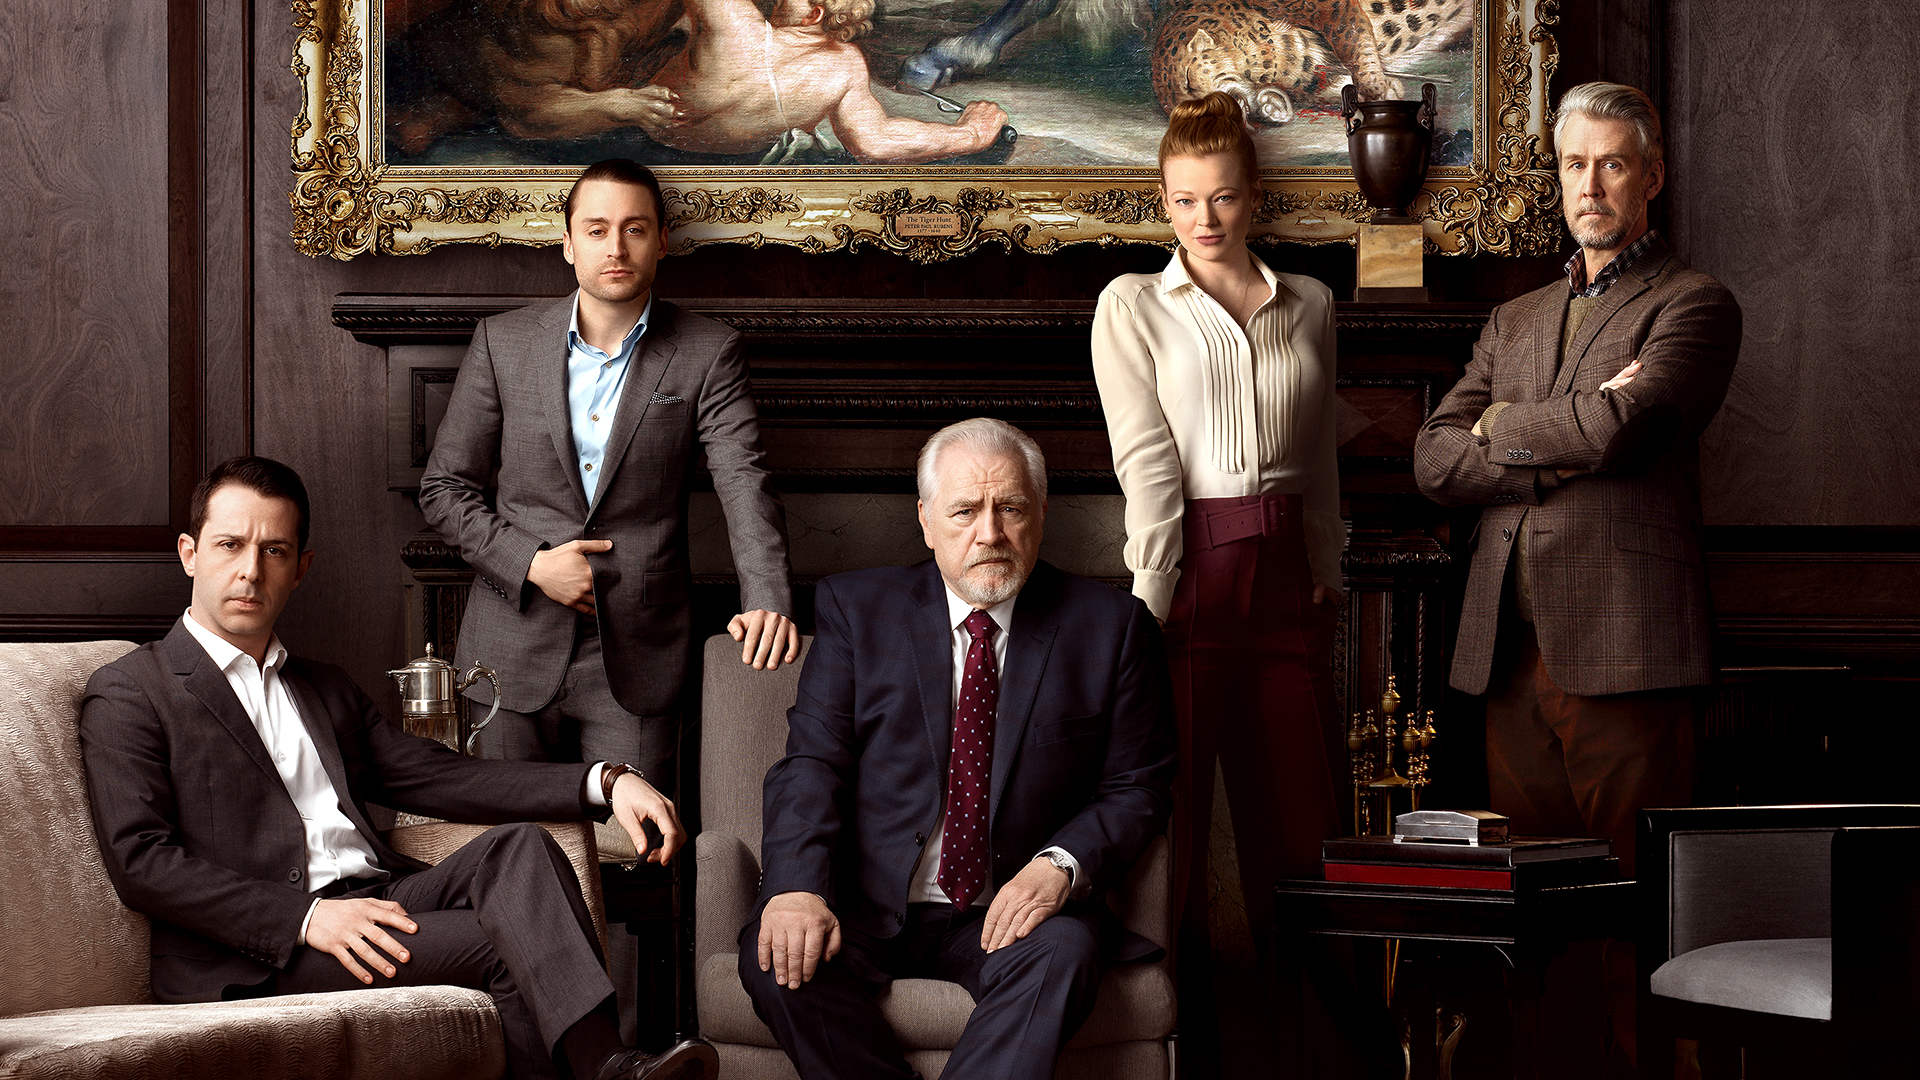 Succession season 2 encases real-life incidents in its script!